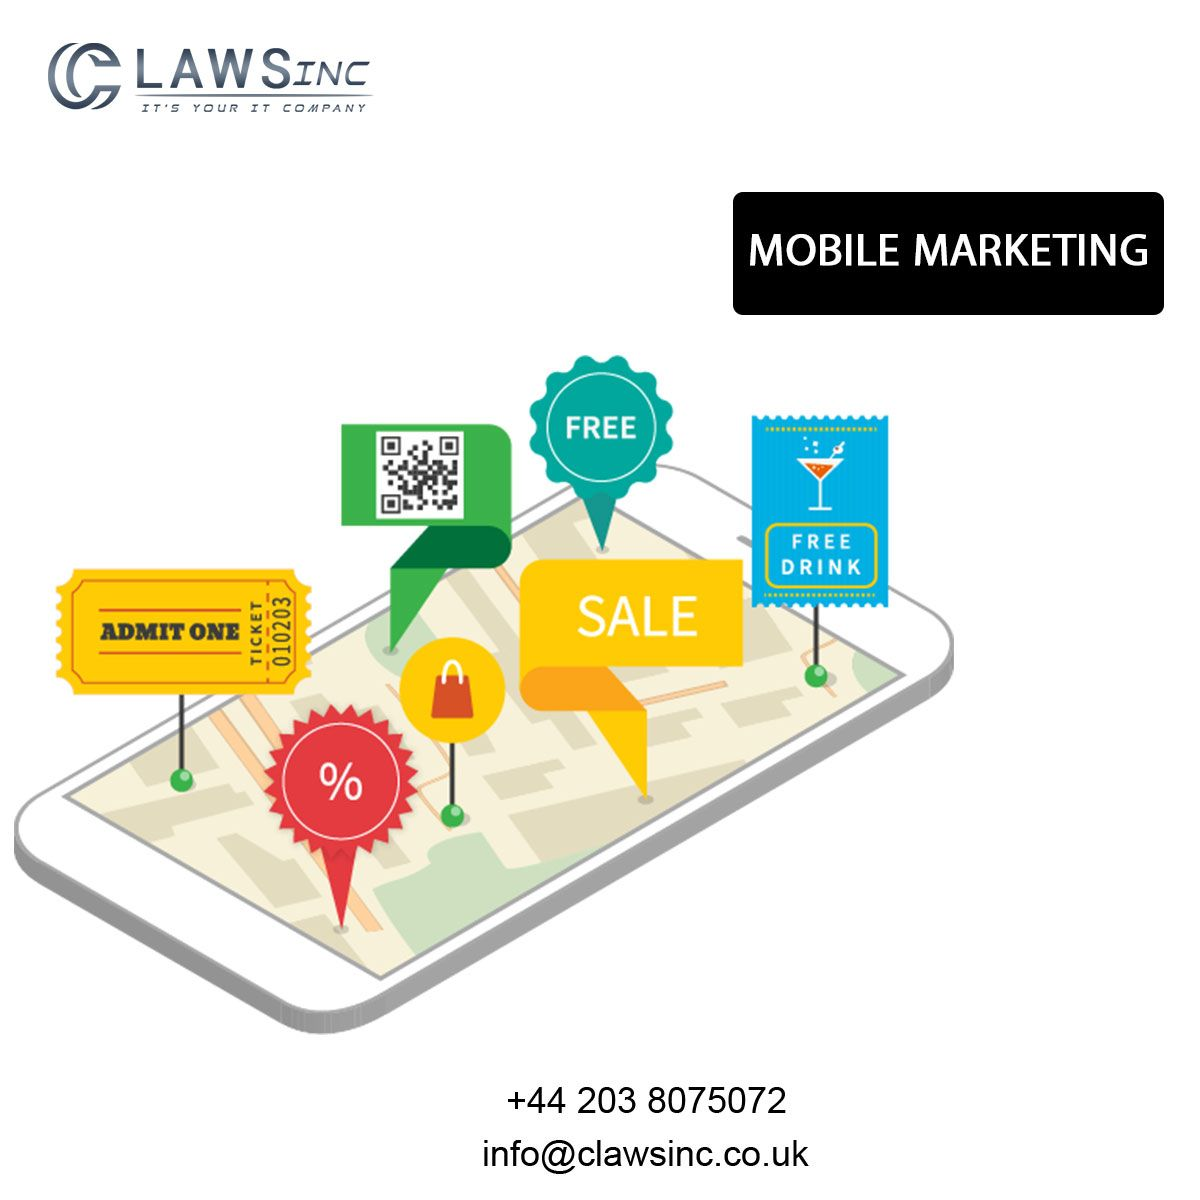 Mobile marketing is multi-channel online marketing technique focused